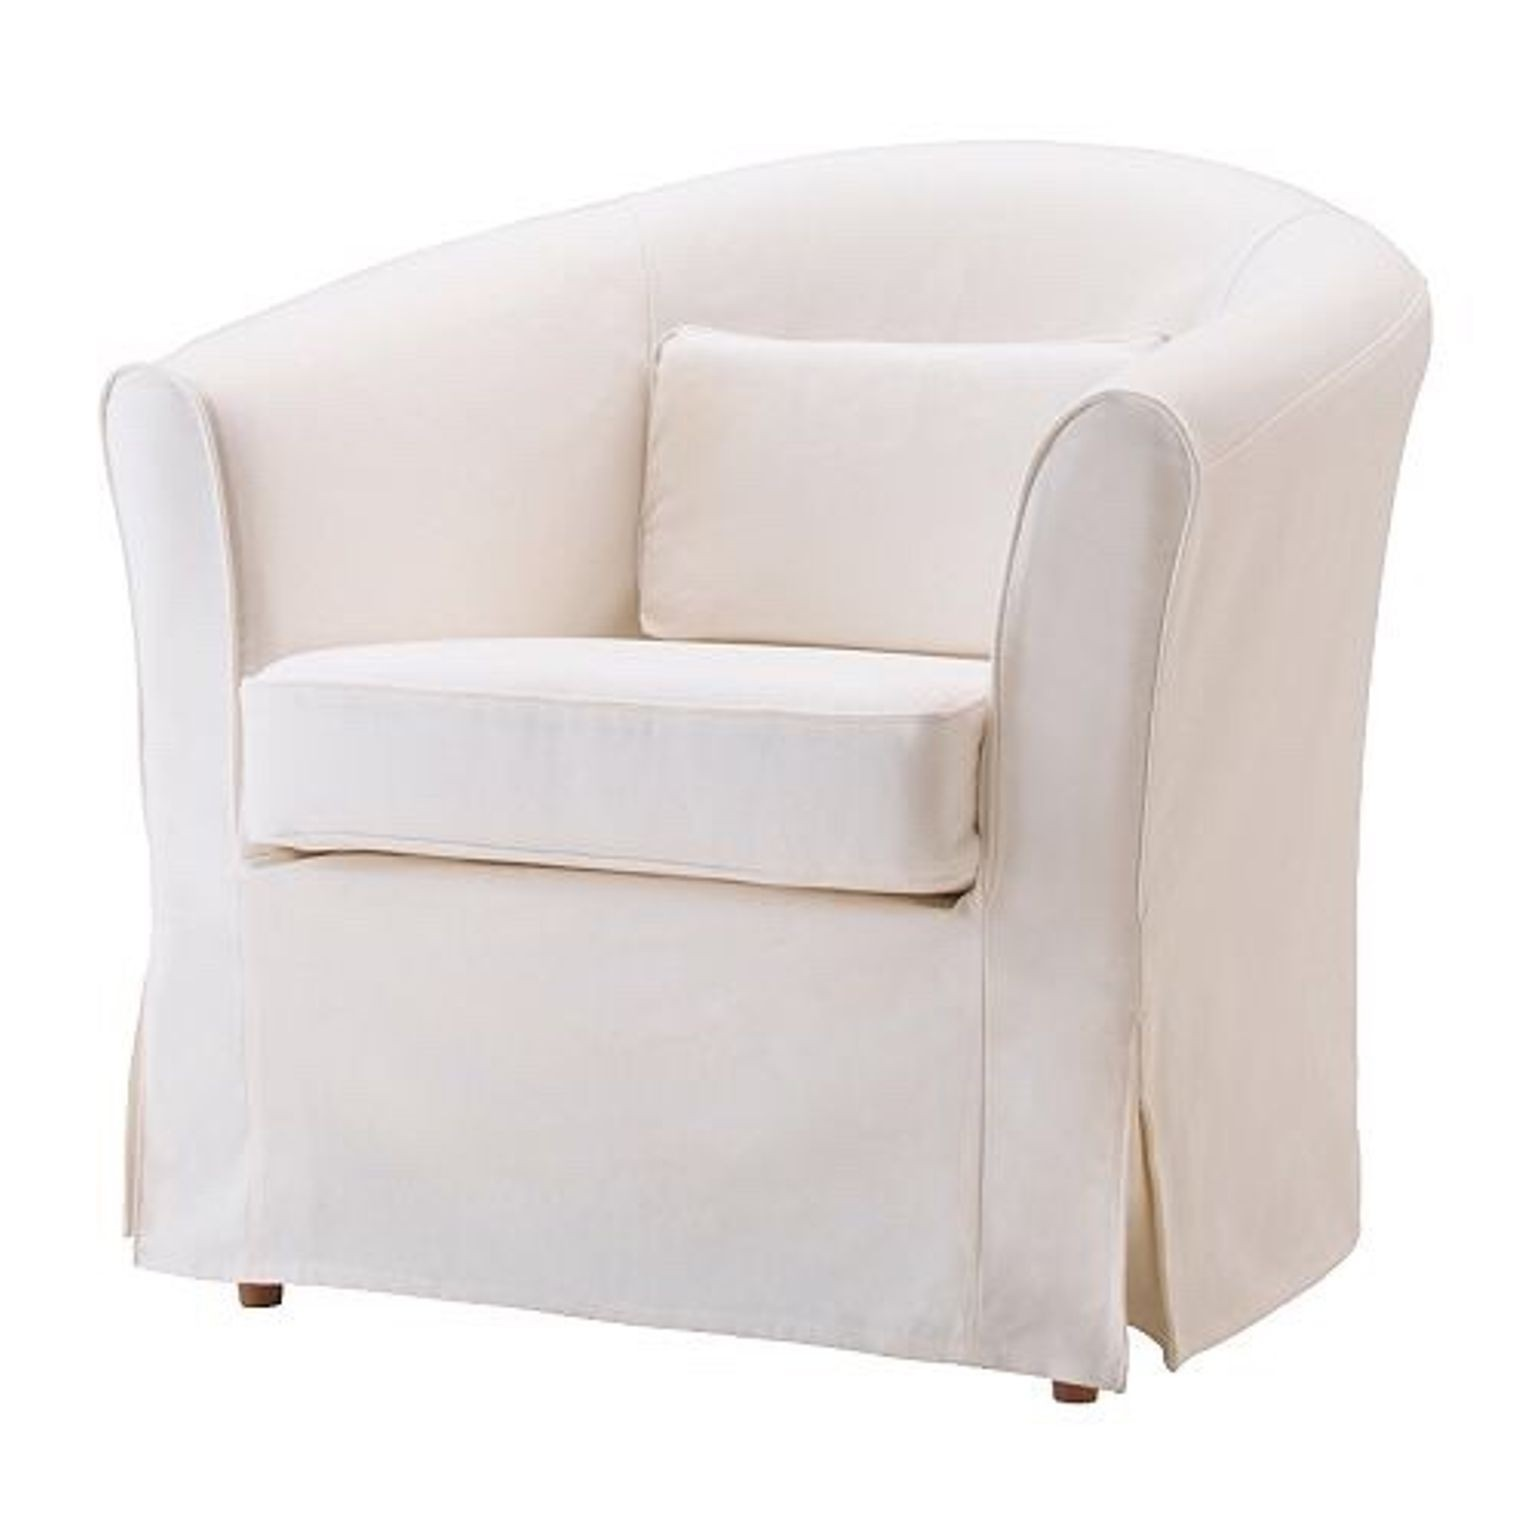 club chair covers most comfortable camping slipcovers for chairs ideas on foter overstuffed